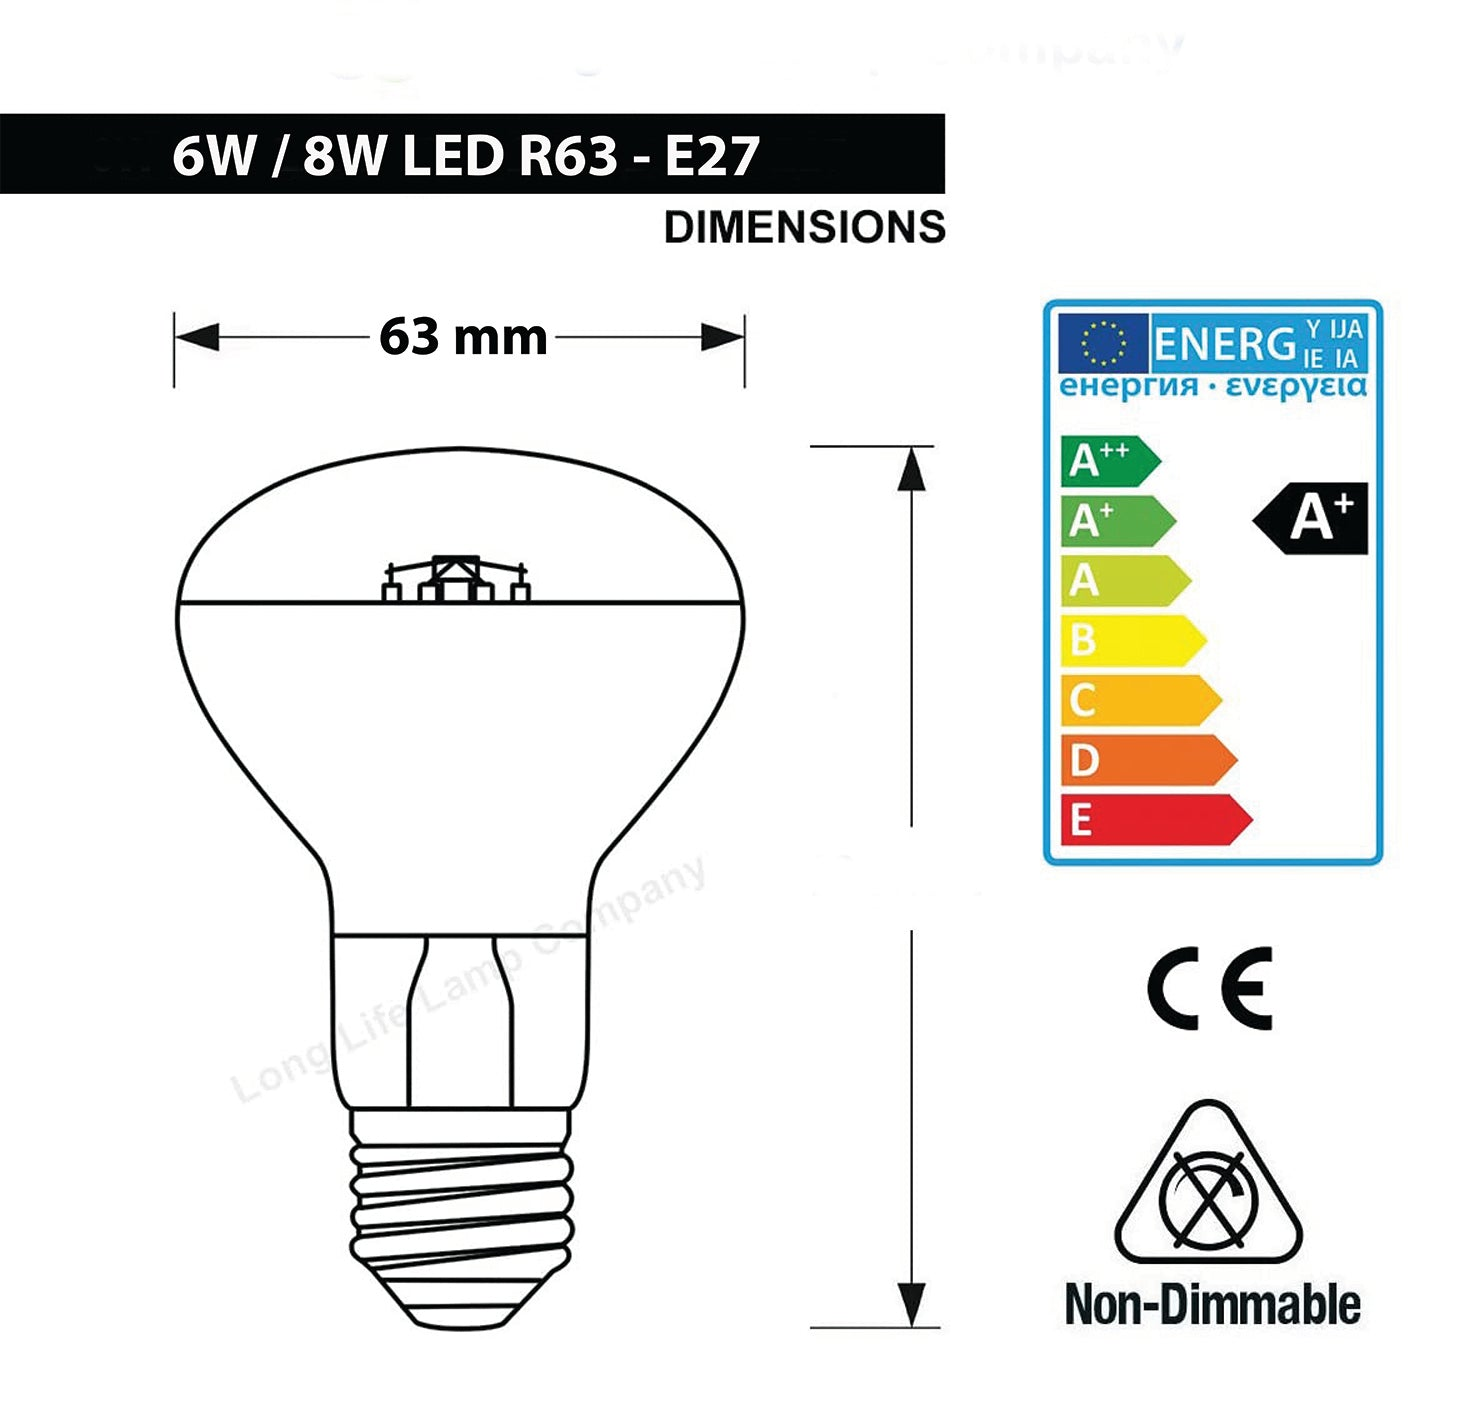 JustLED – R63 Reflector LED Spot Light Bulb [Energy Class A++]